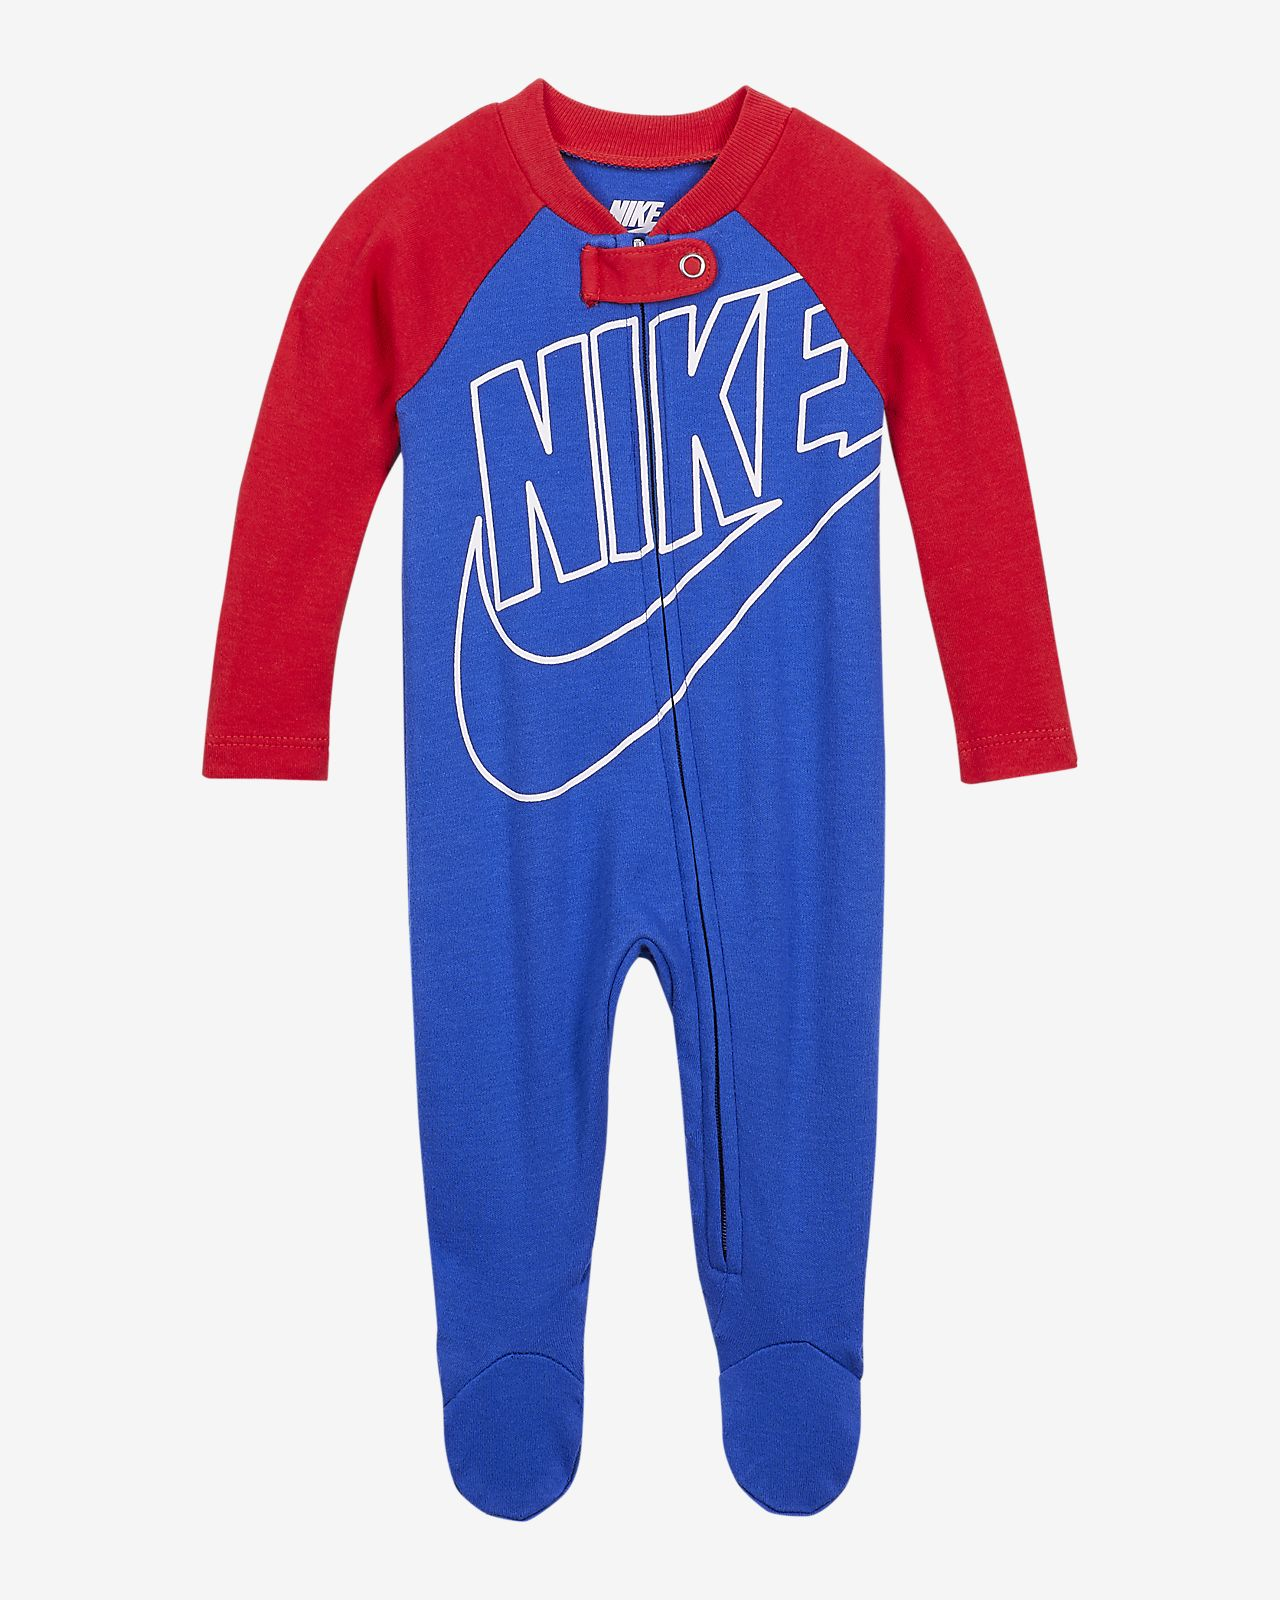 03229b00e Nike Infant Footed Coverall